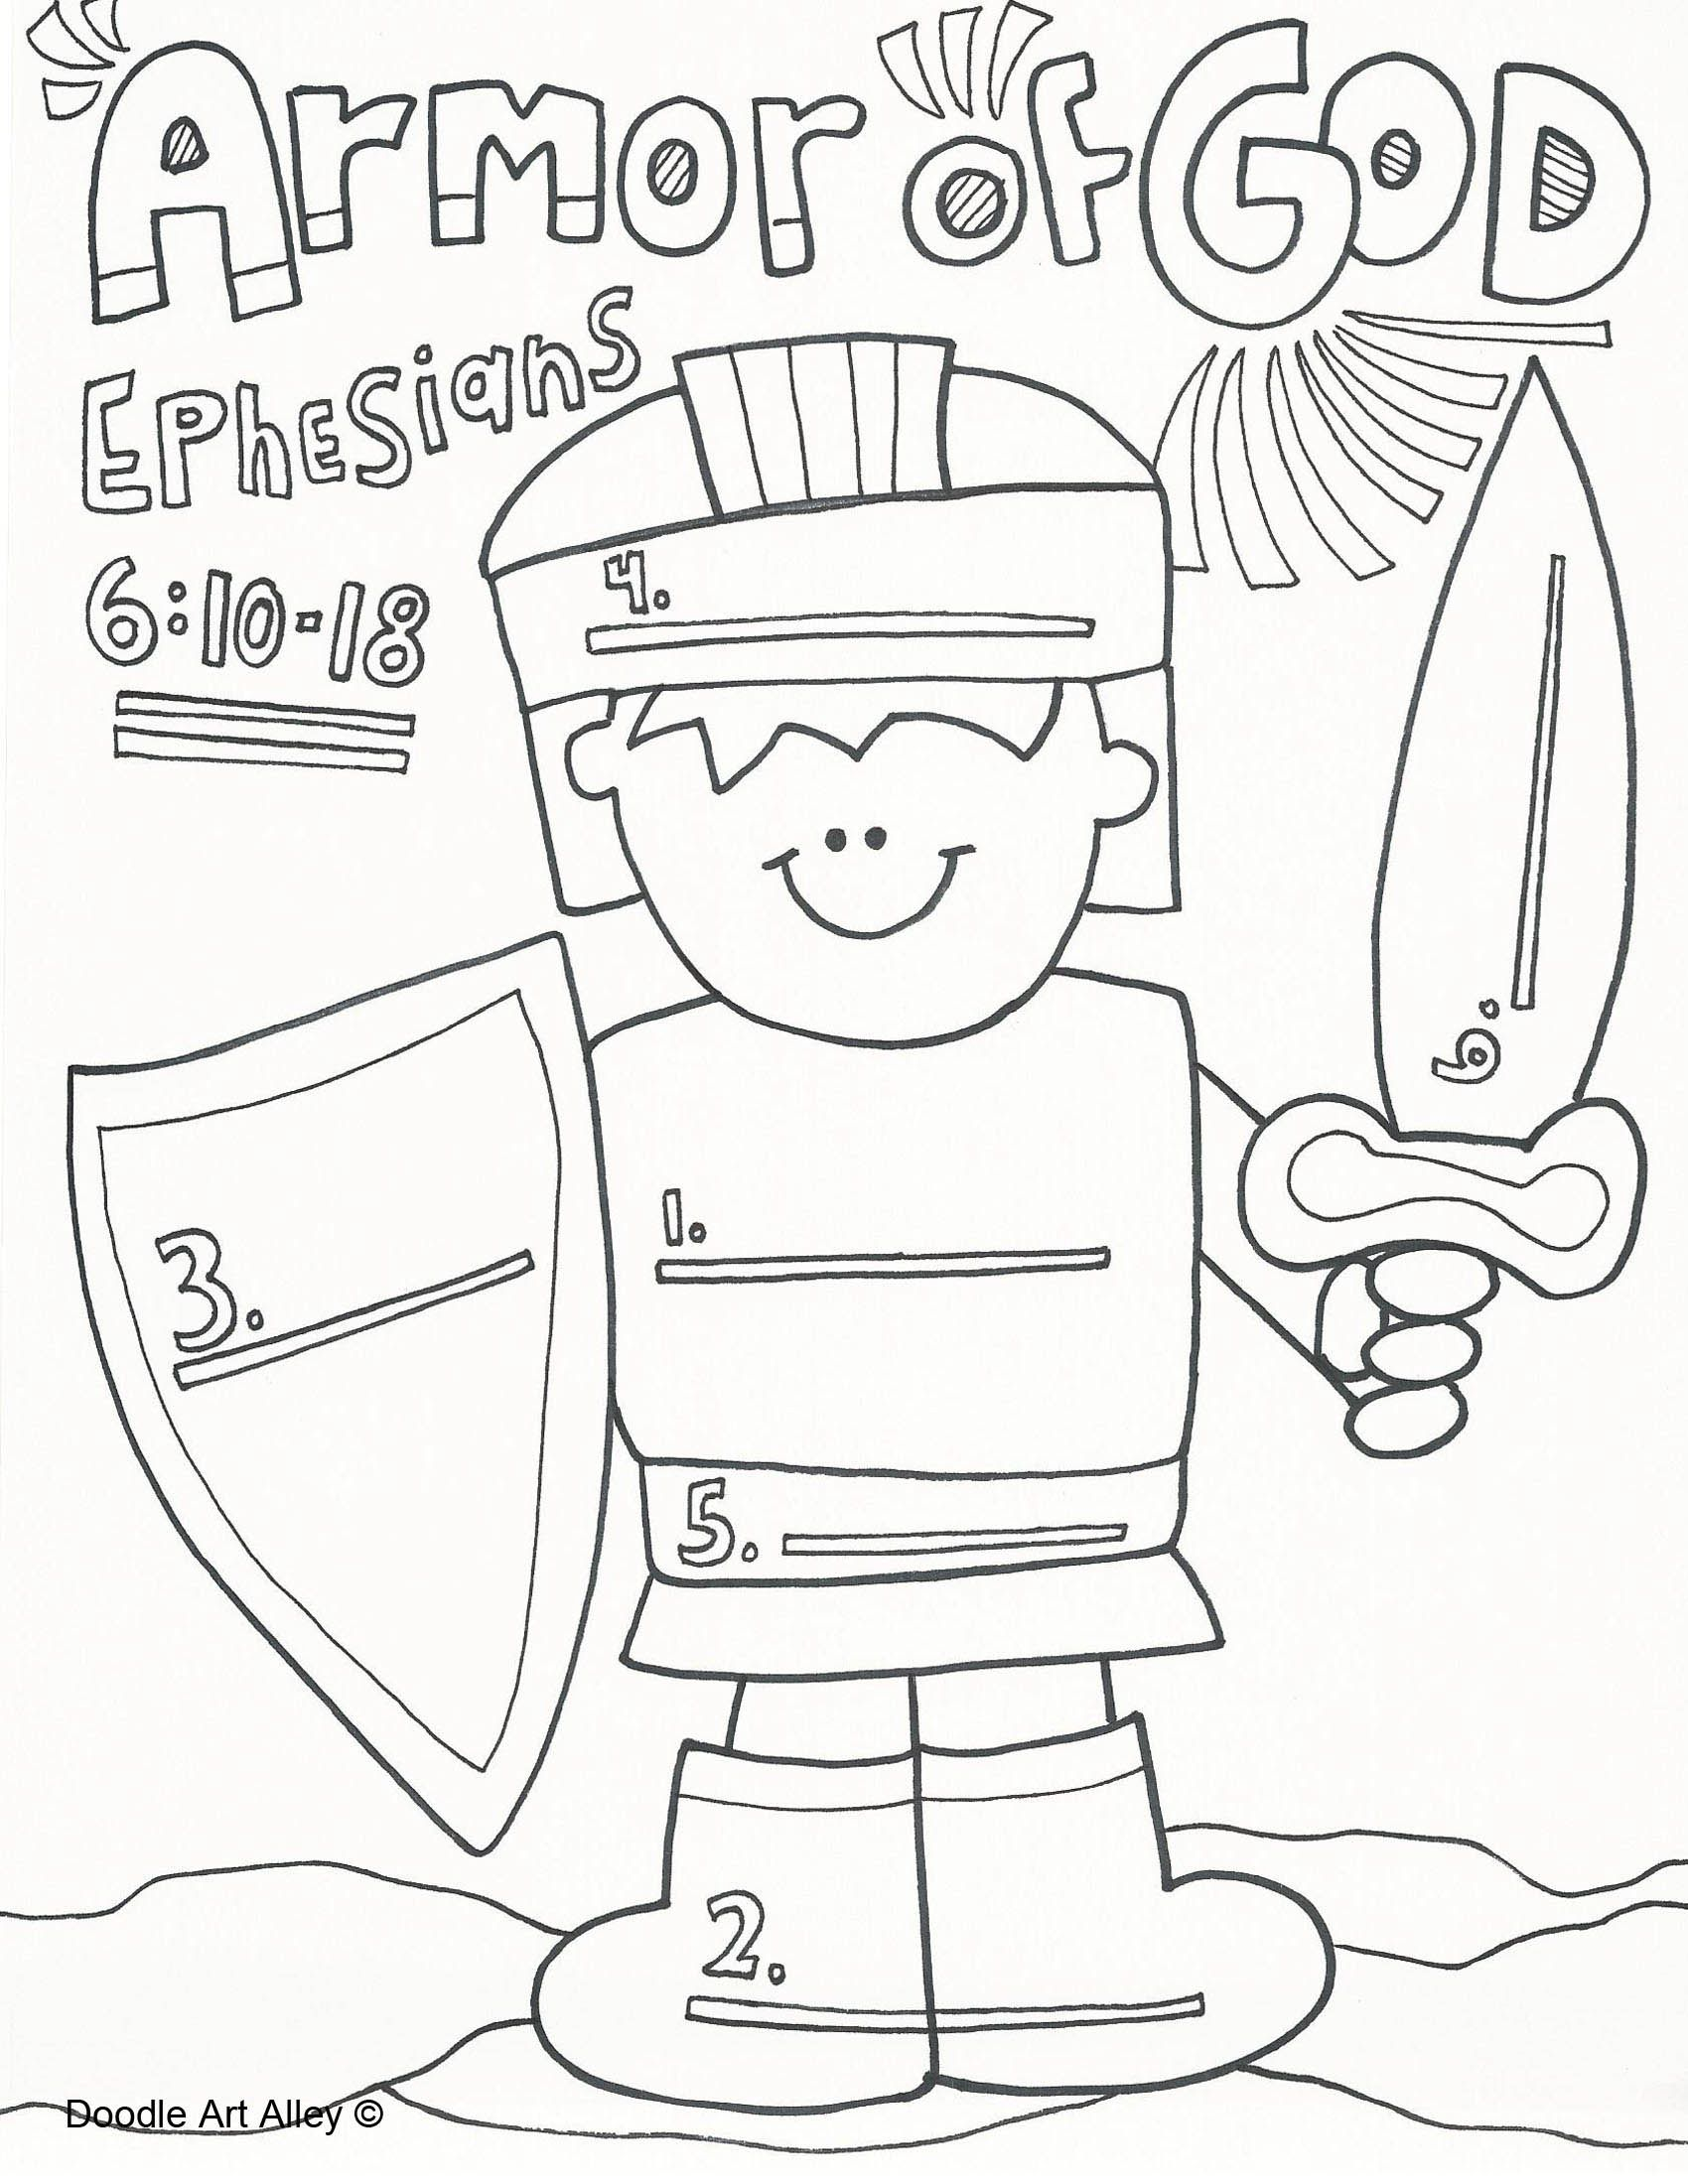 The Christmas Angel Blog Teaching The Armor Of God Sunday